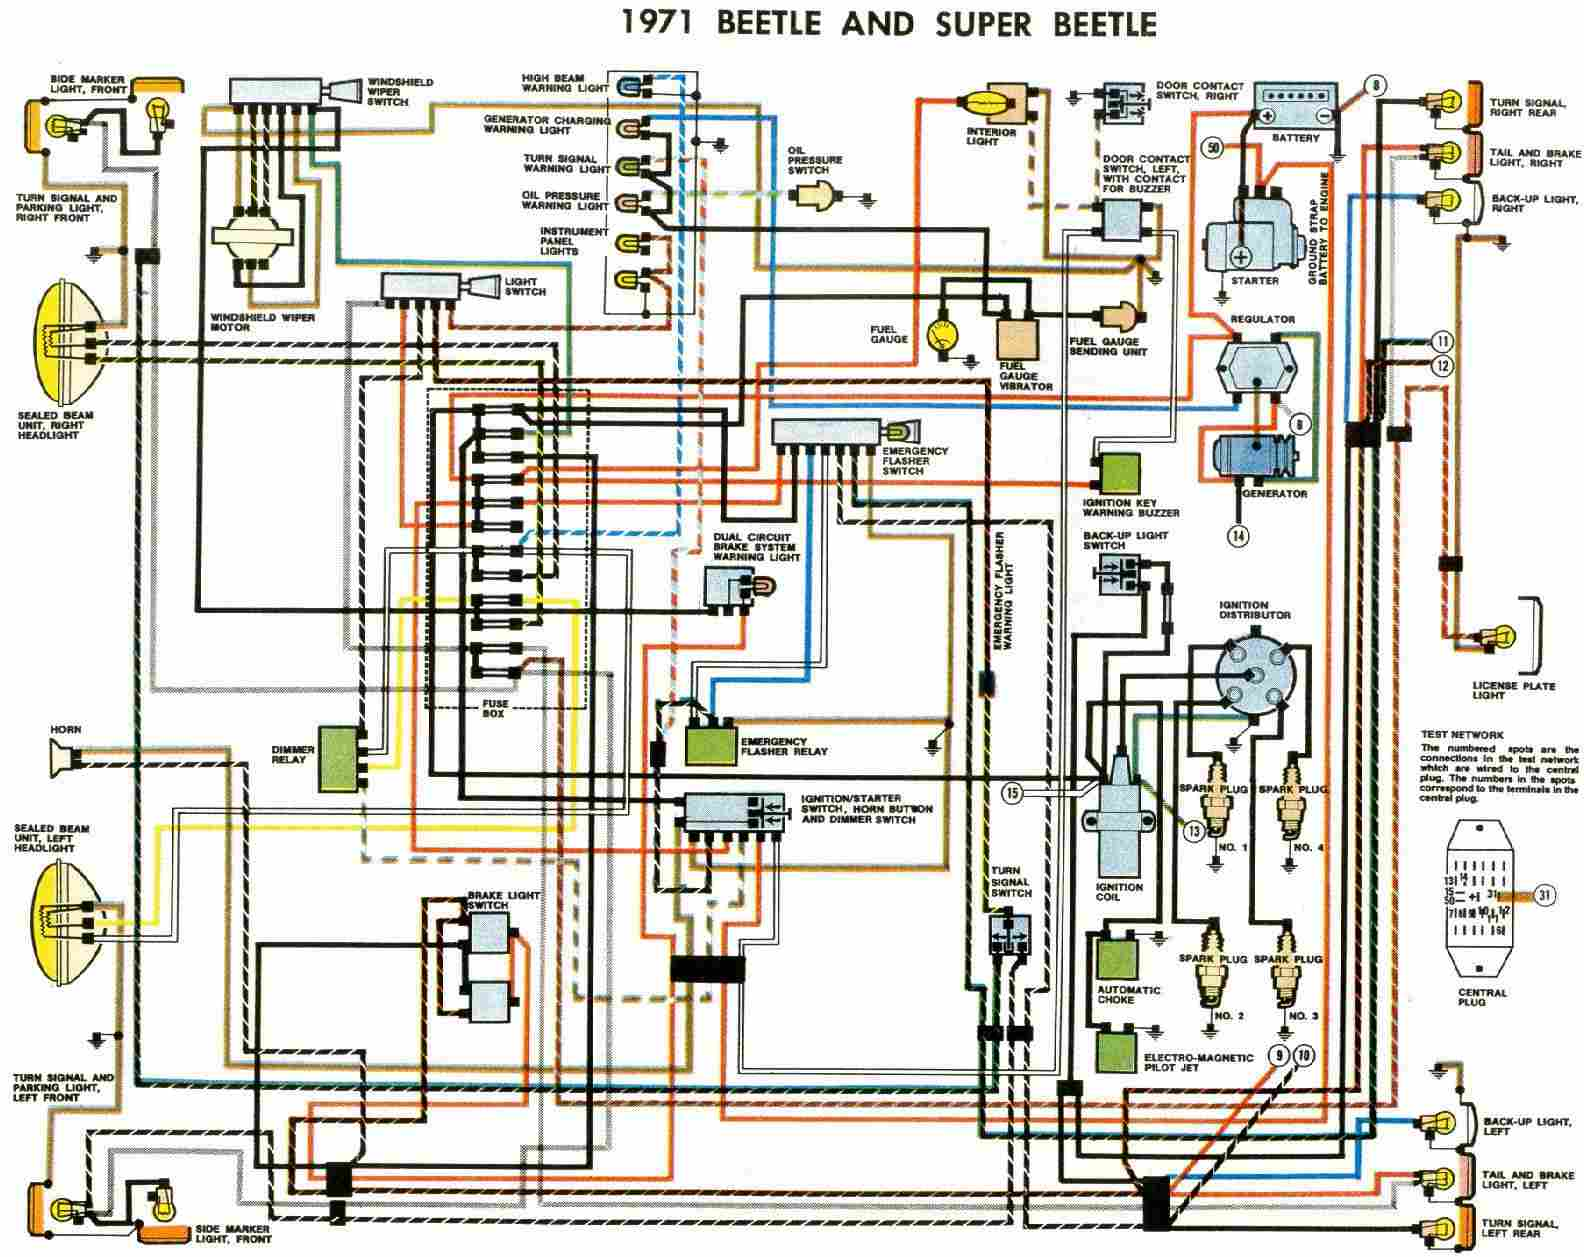 1971 Vw Beetle And Super Beetle on fiat wiring diagram